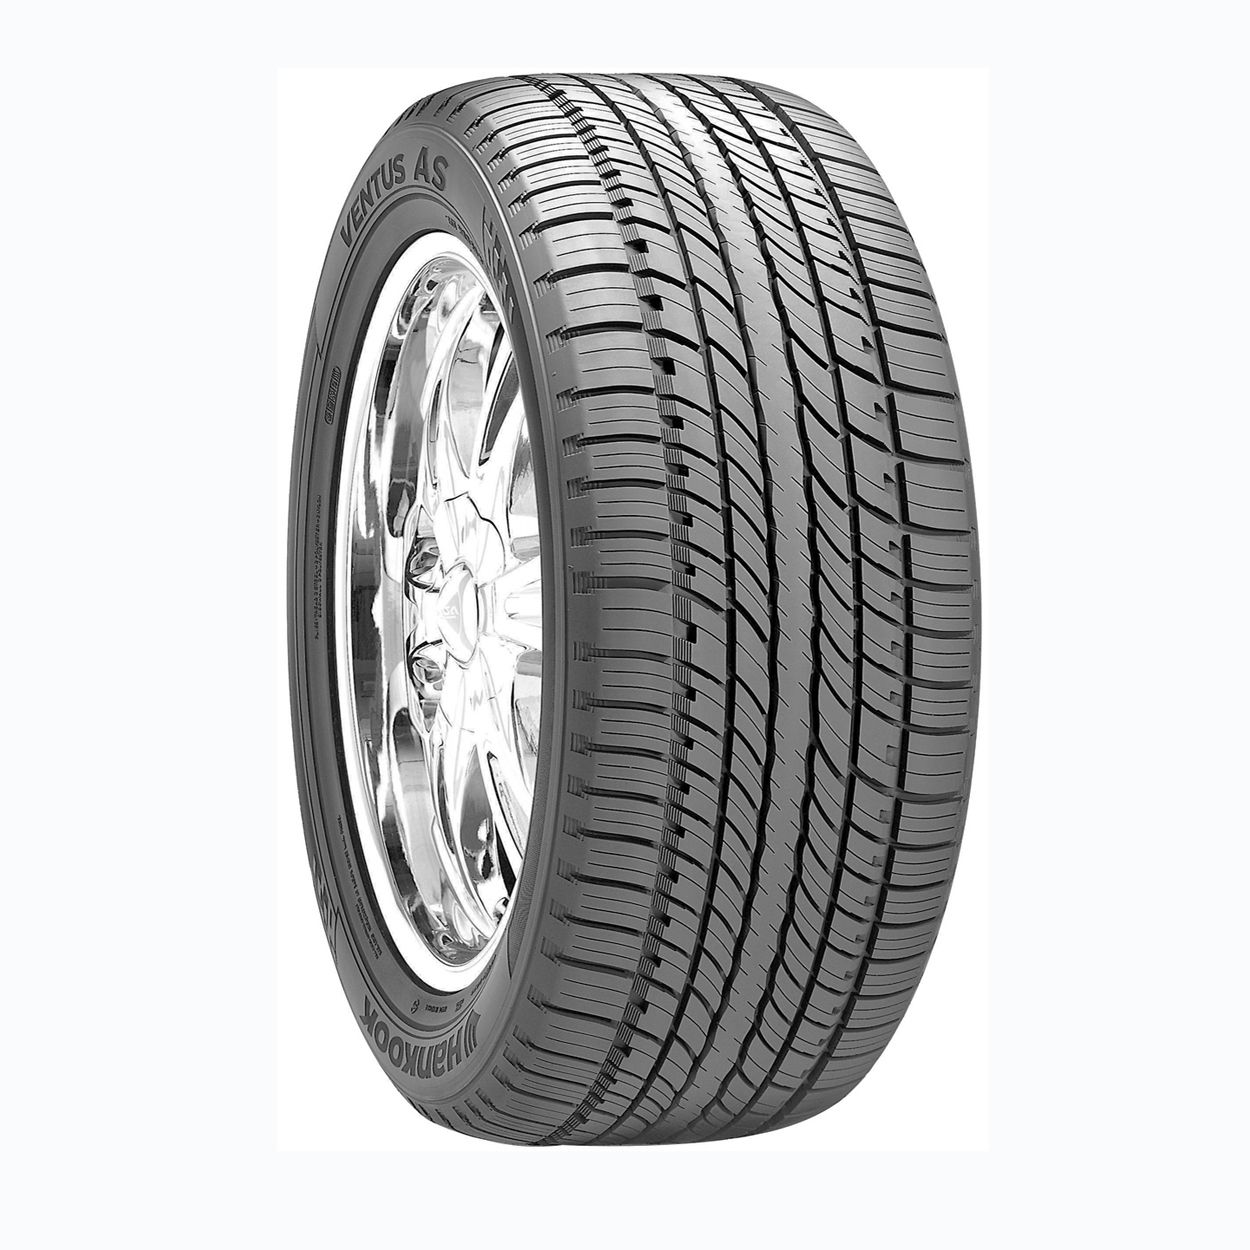 Hankook Ventus AS RH07 235/65R18 106H SL